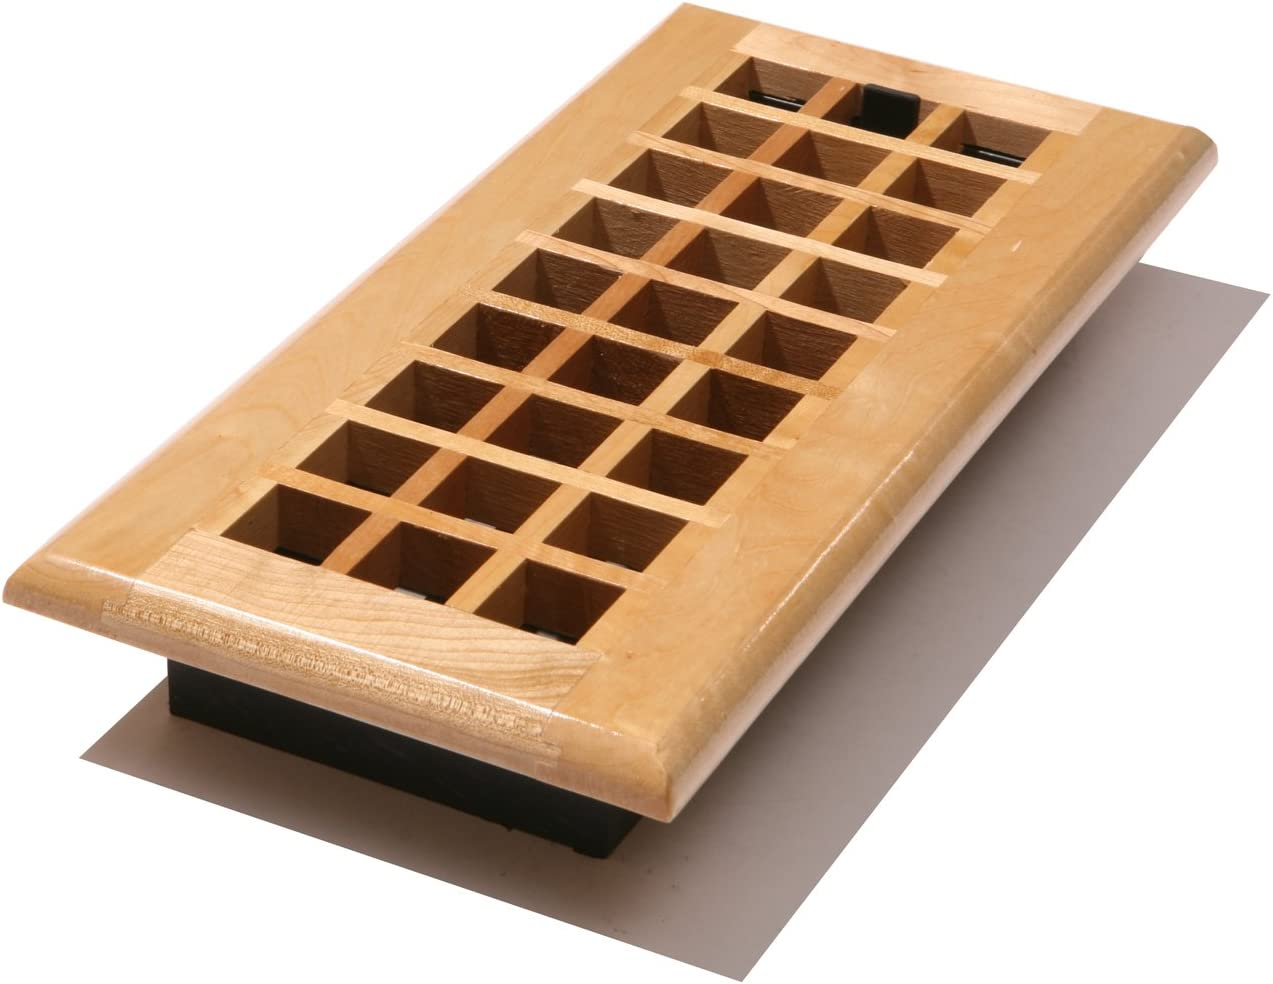 Decor Grates WEM414-N Floor Register, 4-Inch by 14-Inch, Natural Maple